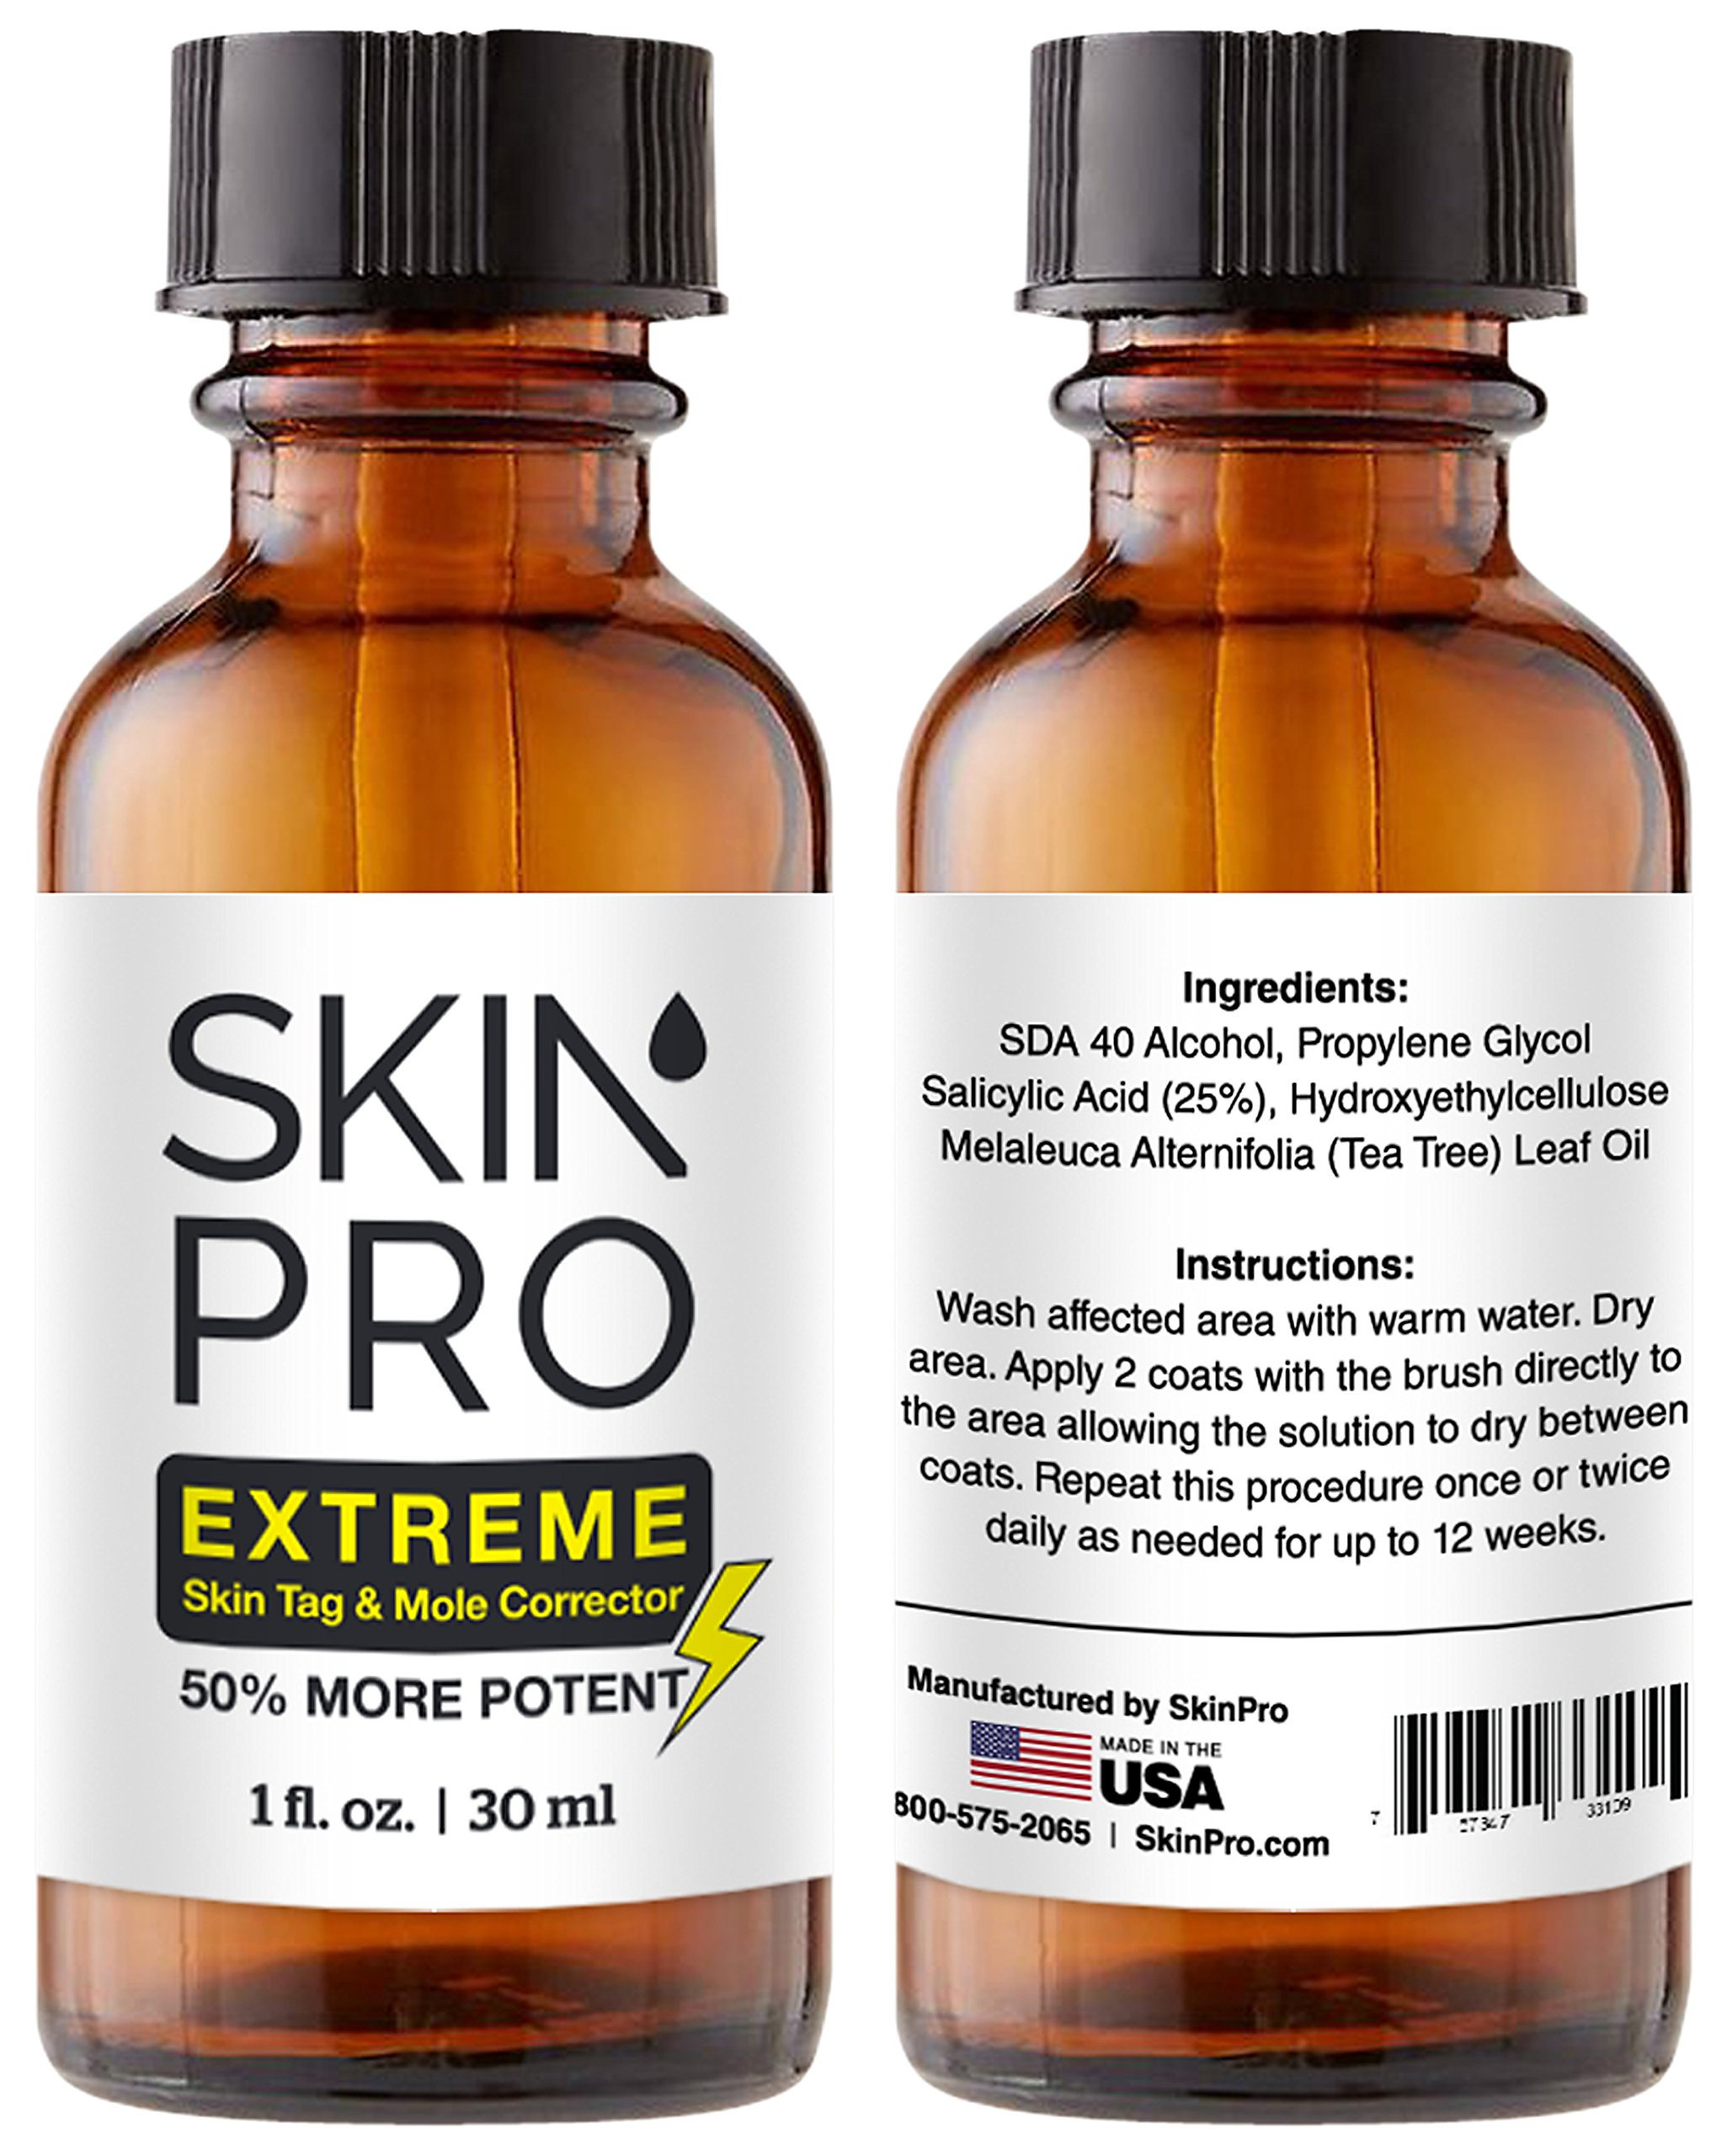 SkinPro EXTREME Skin Tag Remover & Mole Corrector | Fast Acting Physician Level 3 Formula | Industry Leading 25% Pure Salicylic Acid Concentration by SkinPro